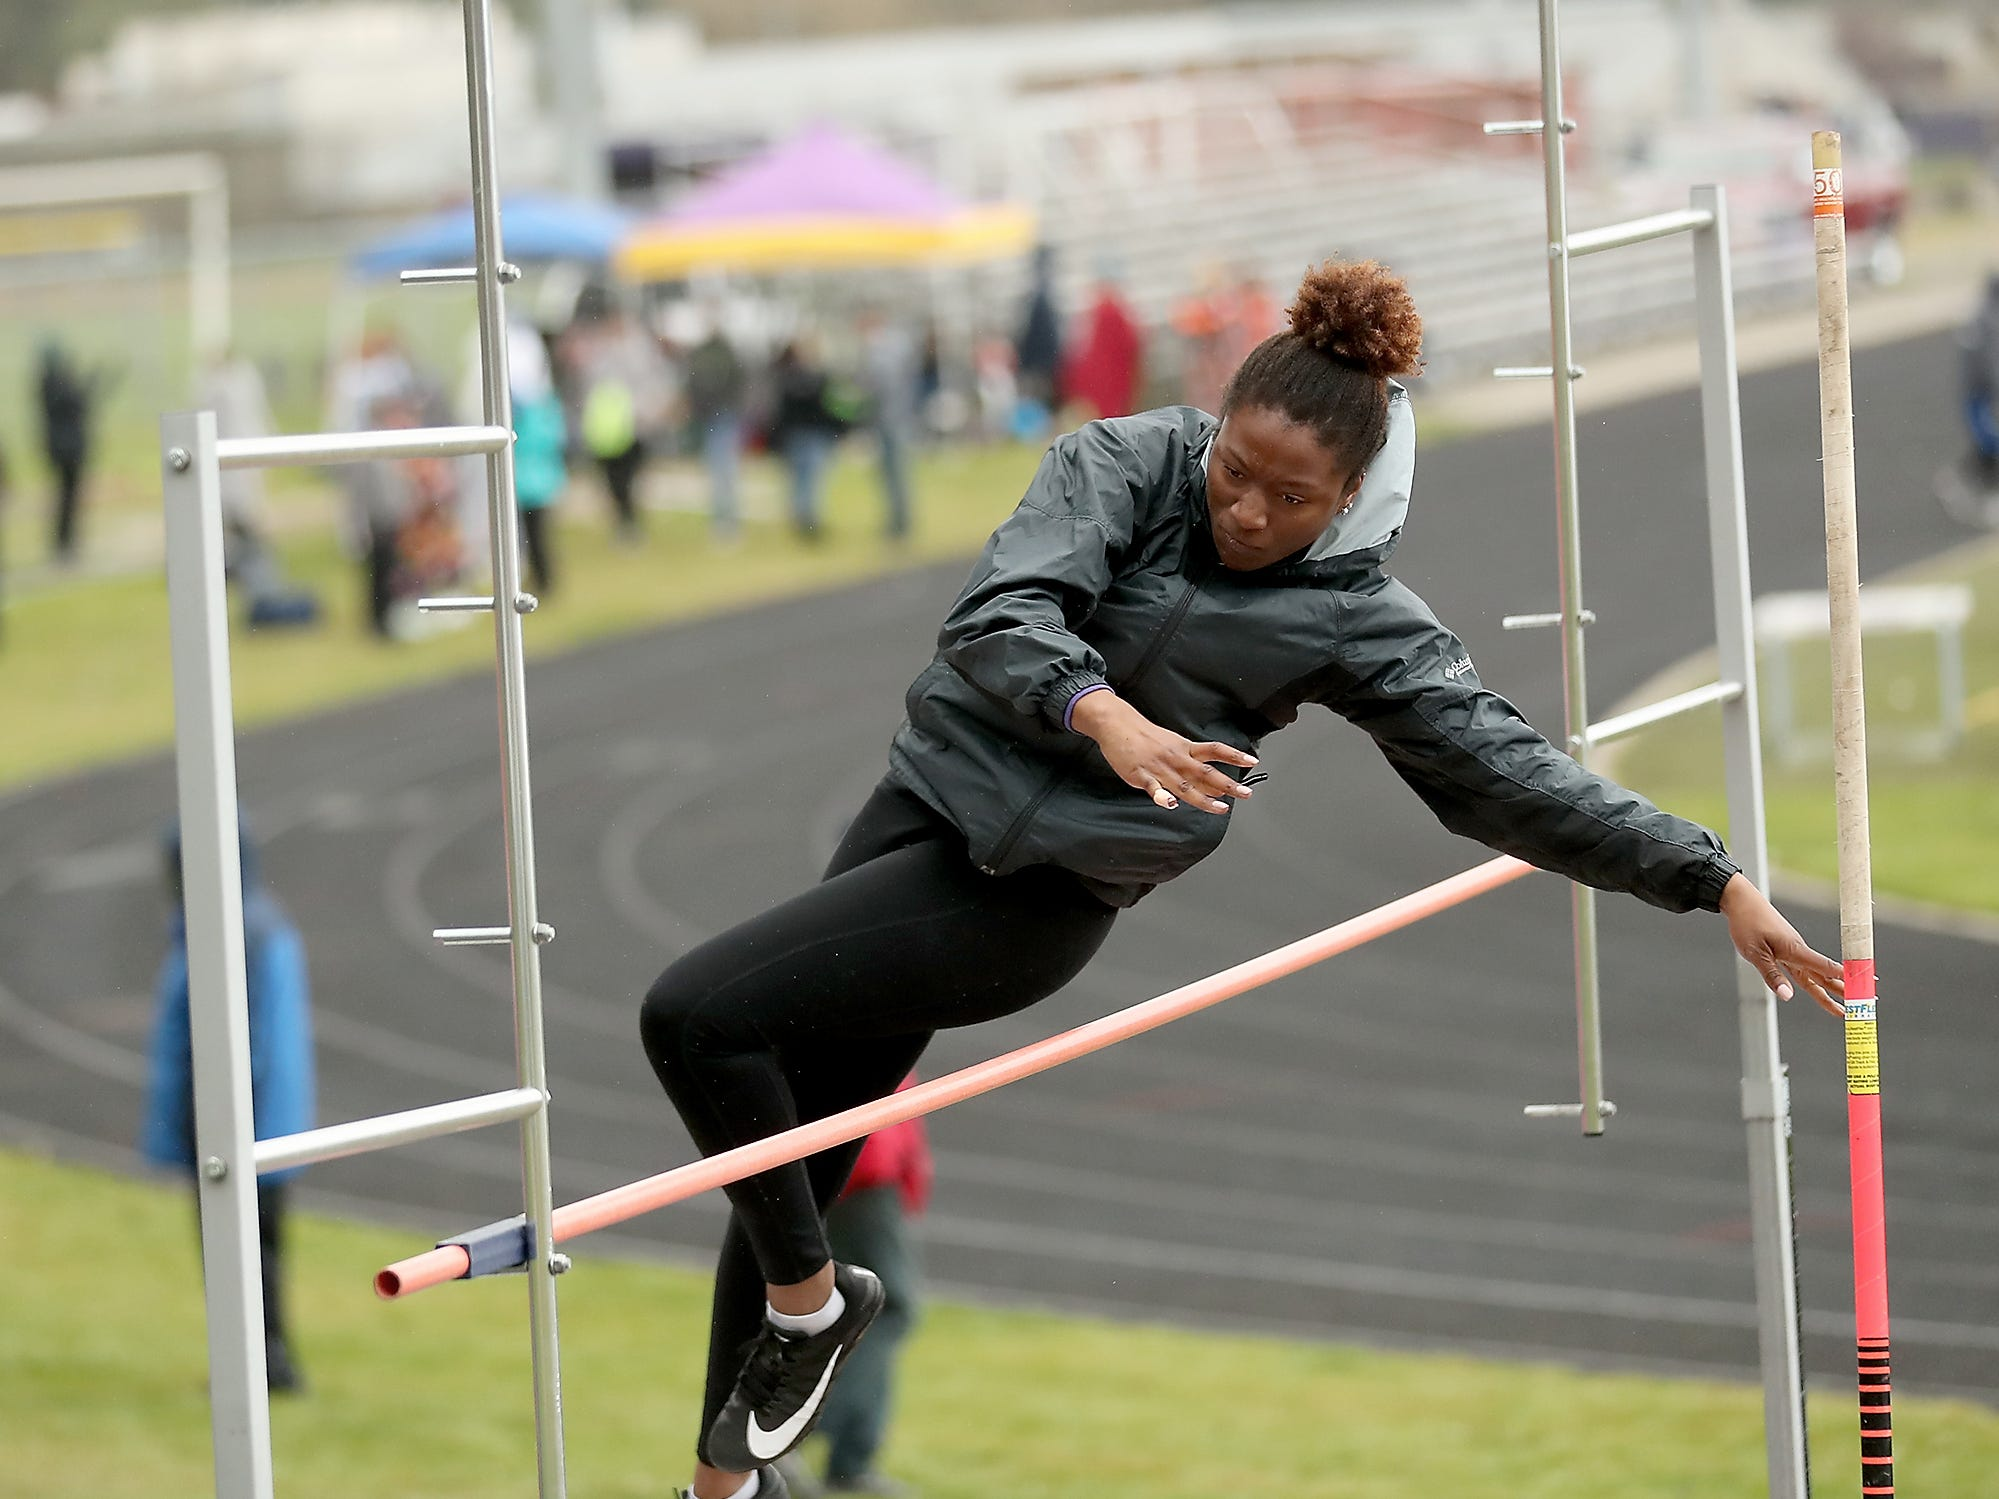 North Kitsap's Ariea Hickmon clears the pole vault bar during the Lil' Norway Invitational at North Kitsap High School in Poulsbo on Saturday, April13, 2019.